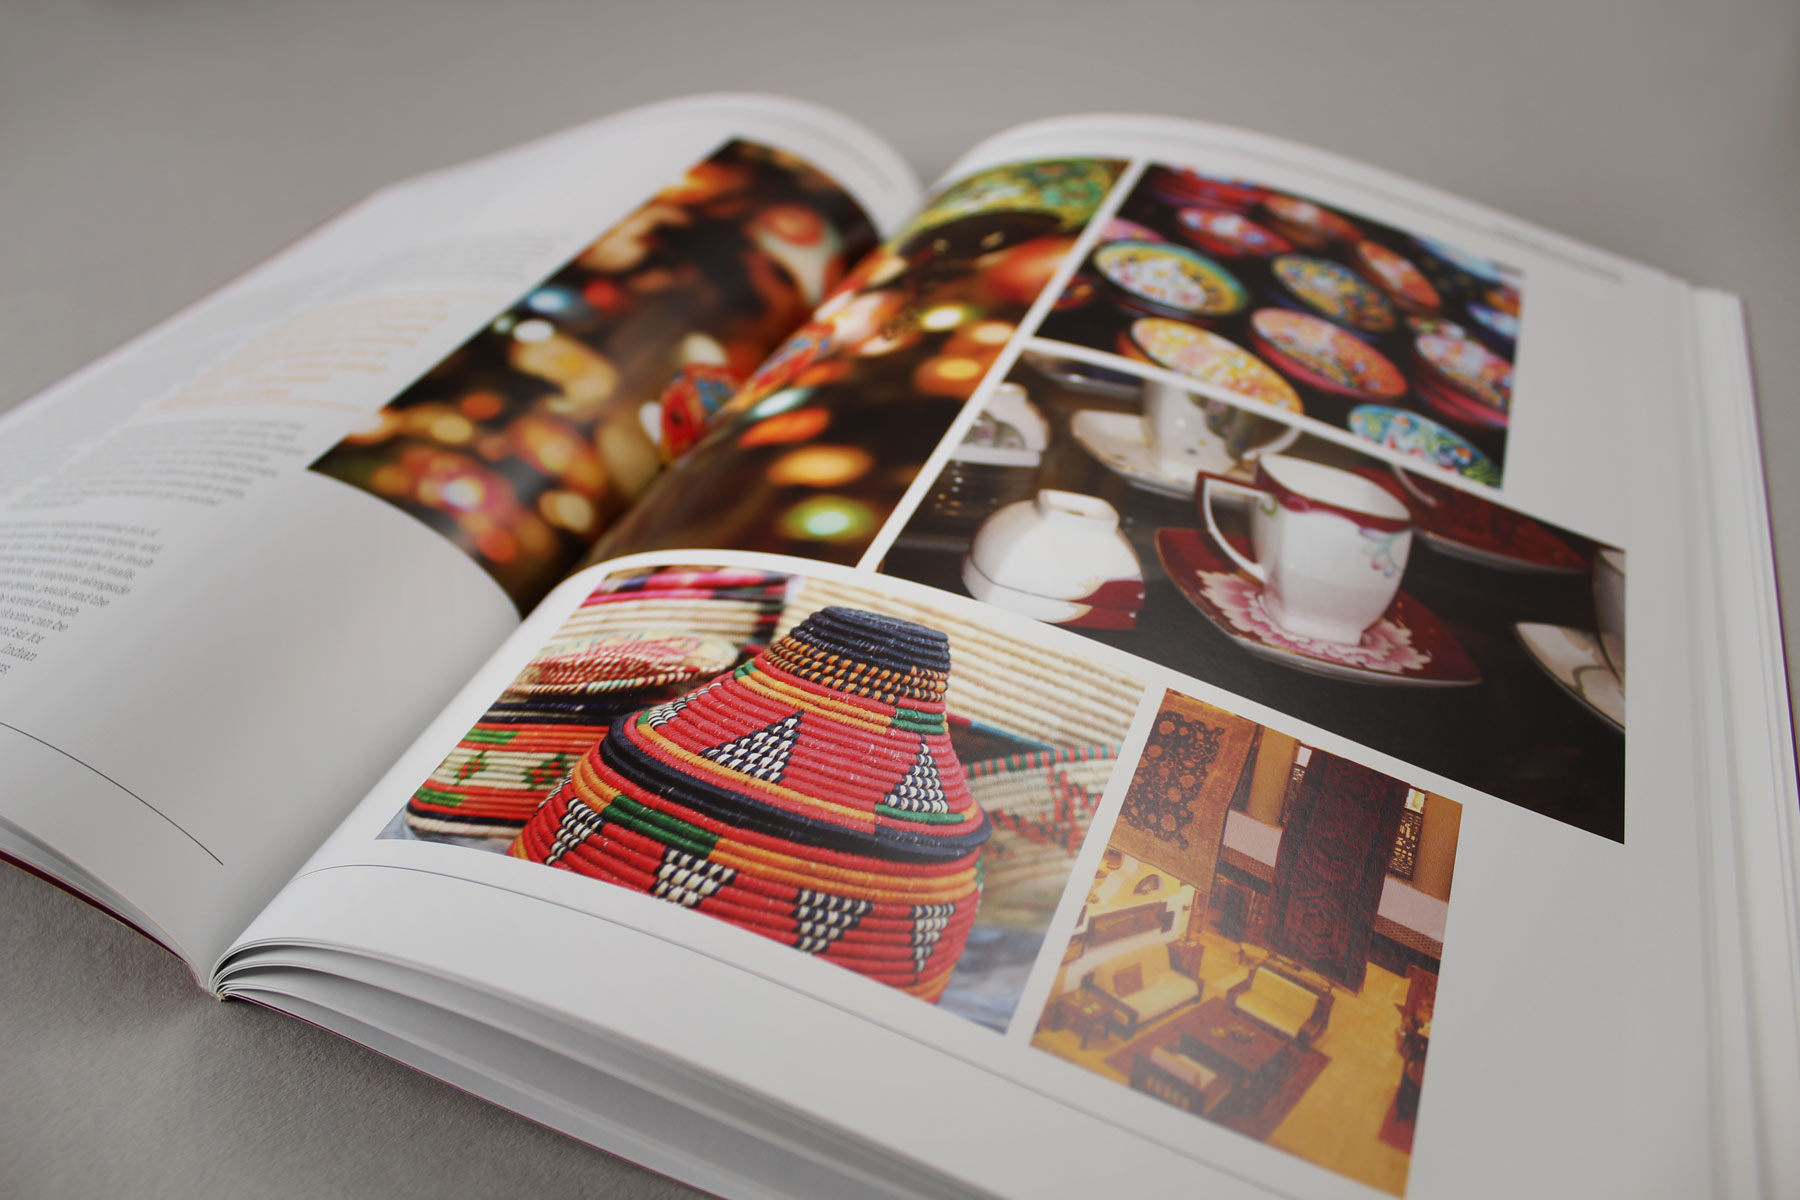 The images play as much of a part as the text in creating an informative and enjoyable read.